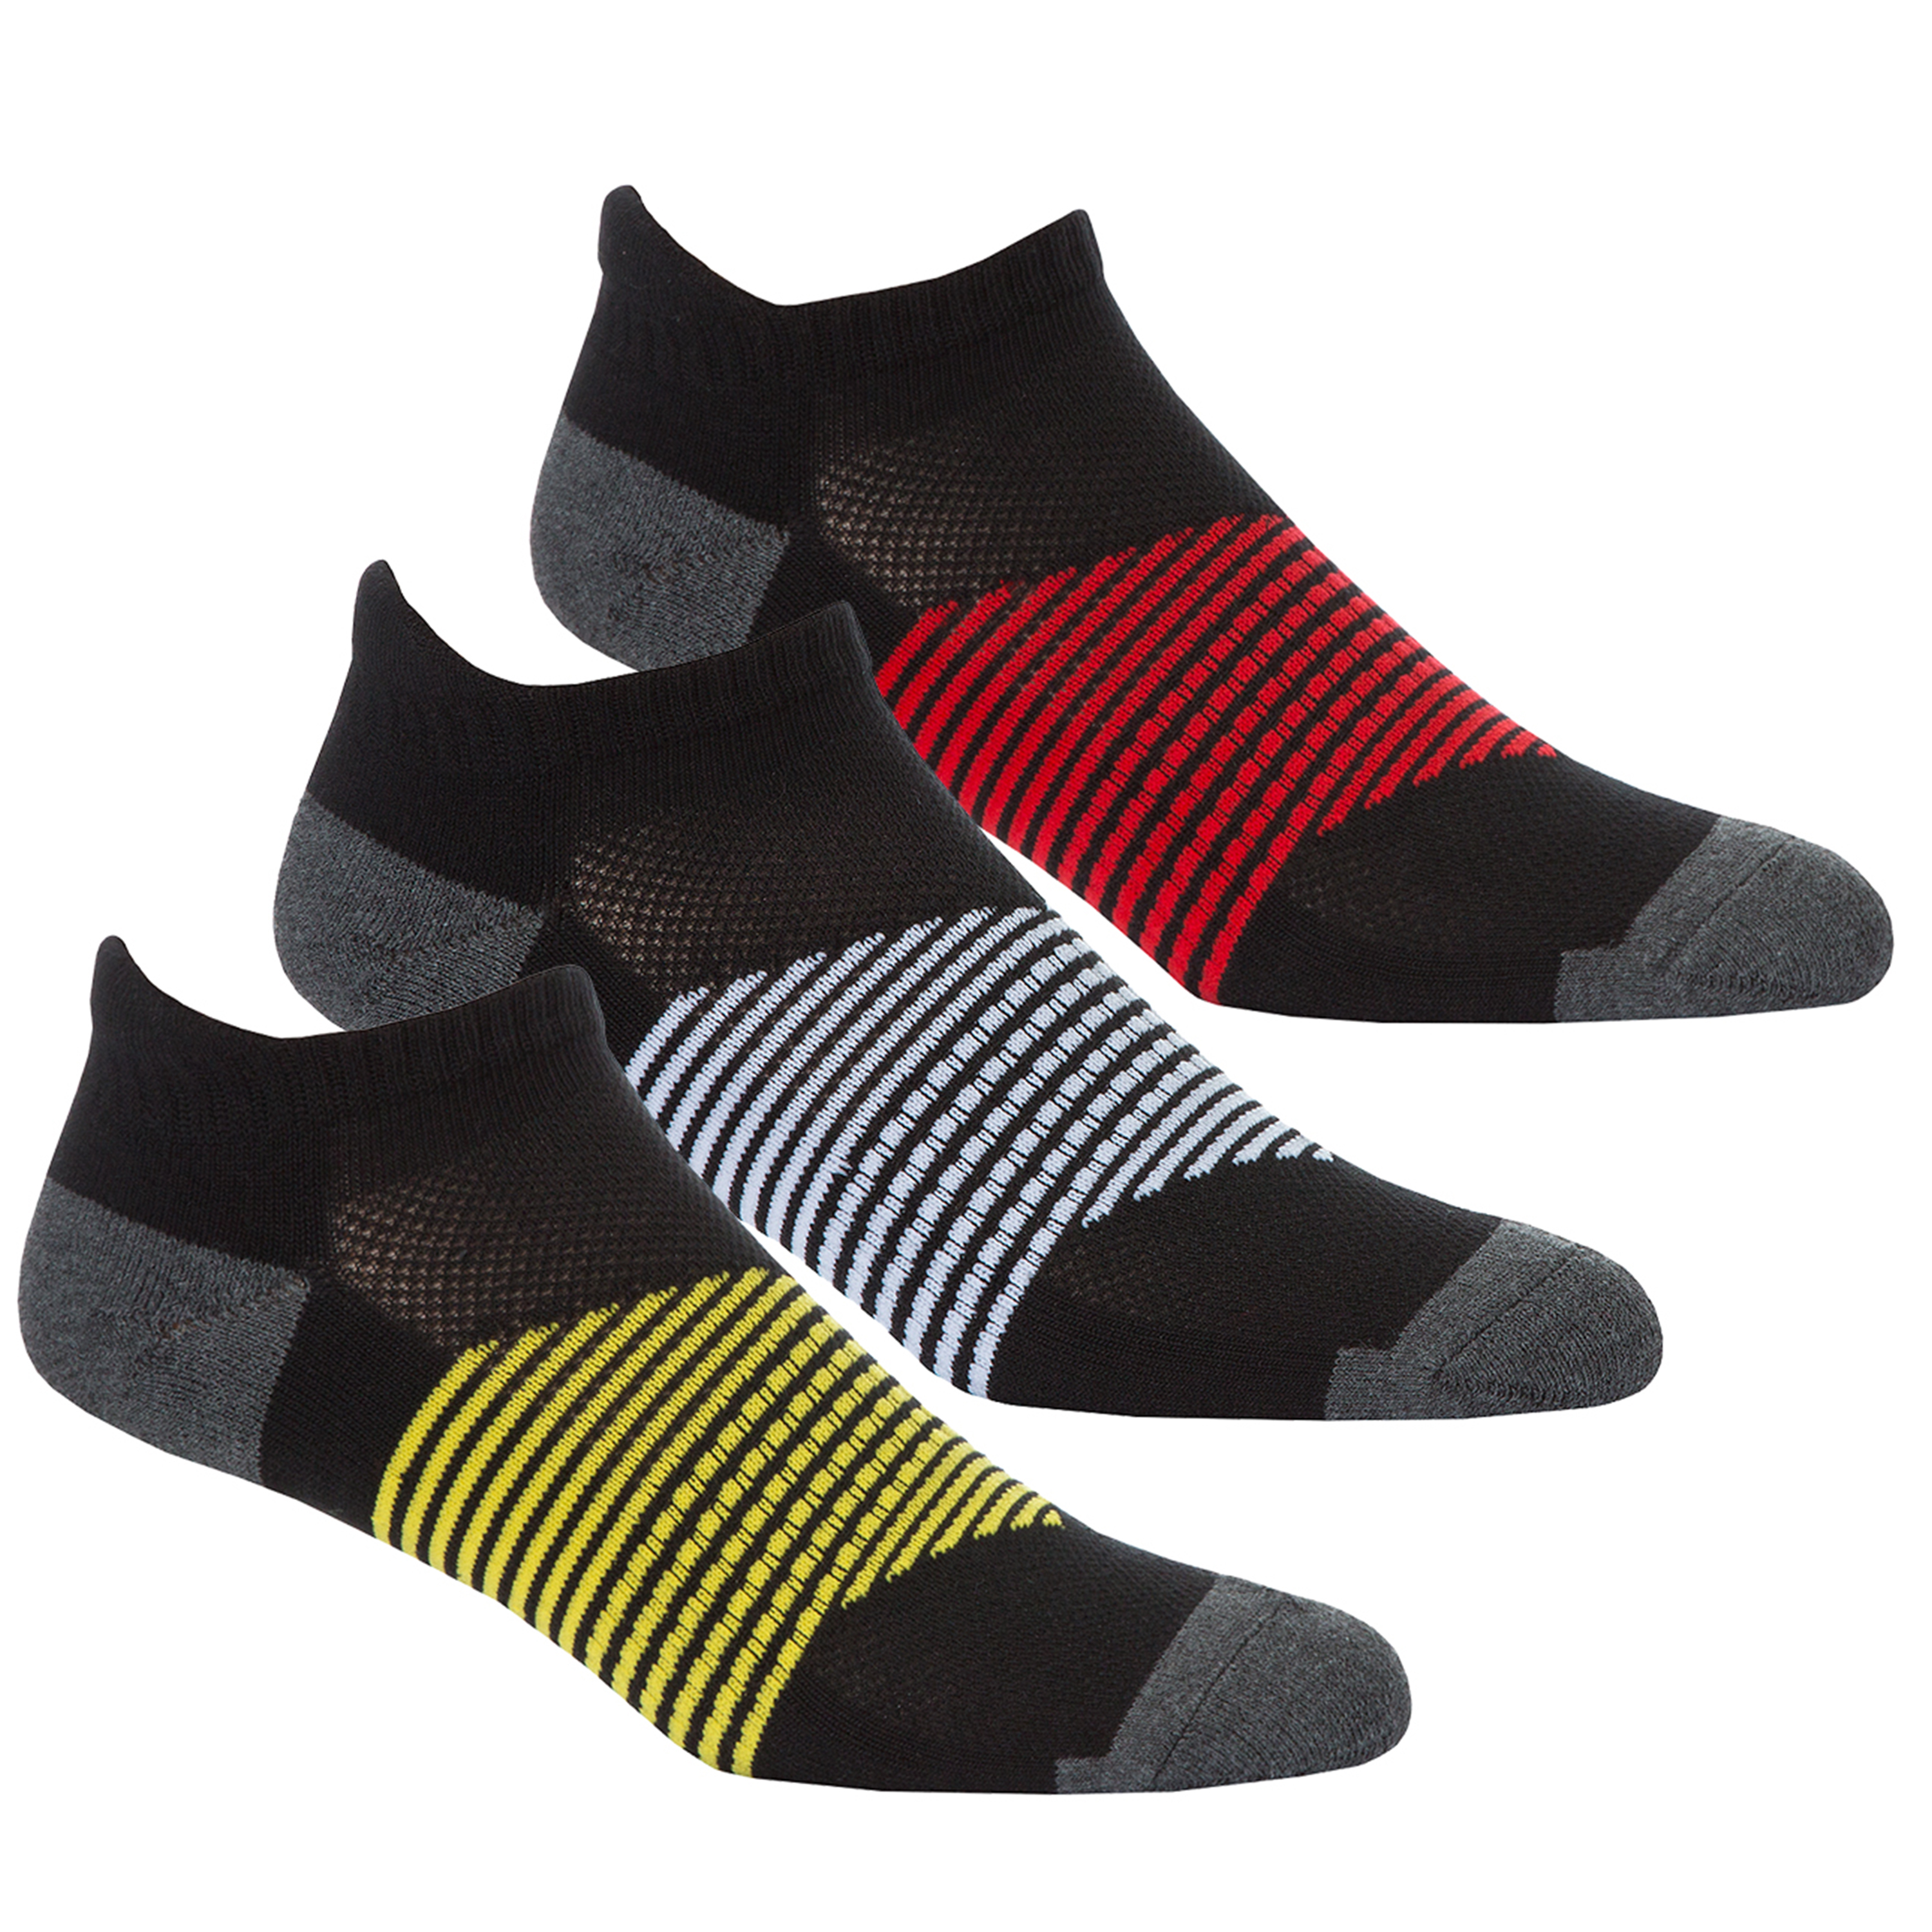 White//Black//Yellow 7-12 US Redtag Mens Sport Trainer//Liner Socks 3 Pairs